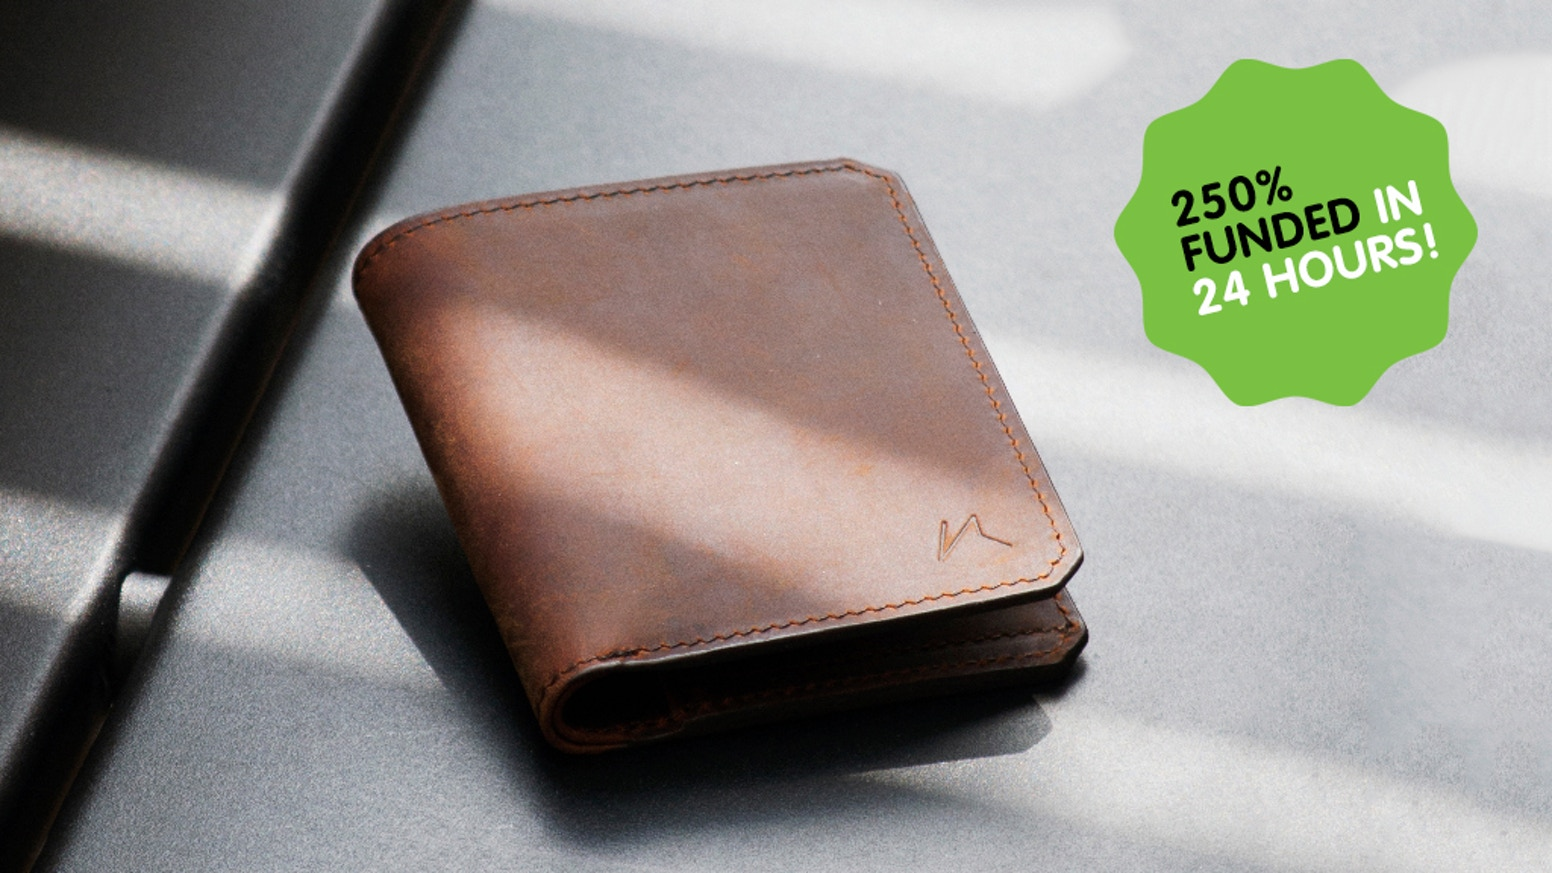 RFID safe slim wallet encompassing the philosophy of Kaizen - continuous improvement. Comes with SIM/SD Card slot and free travel pen.